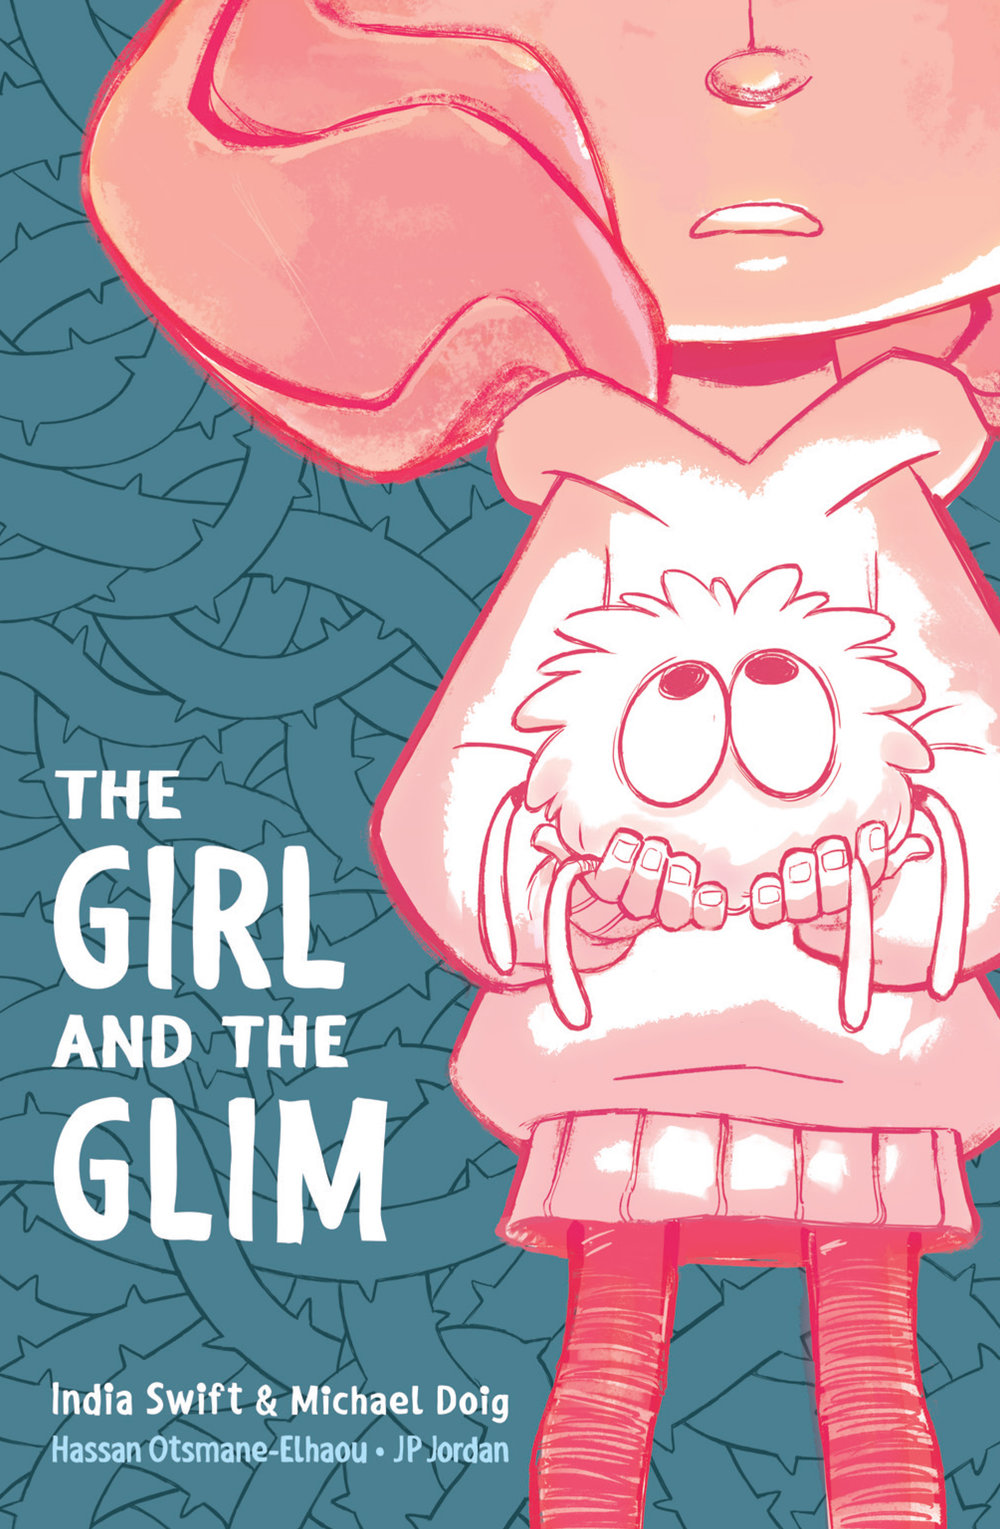 THE GIRL AND THE GLIM - 50 Page Full Colour Graphic Novella. Girl and the Glim follows Bridgette and is the firstpart ofa larger narrative which explores how fear can bring people together.